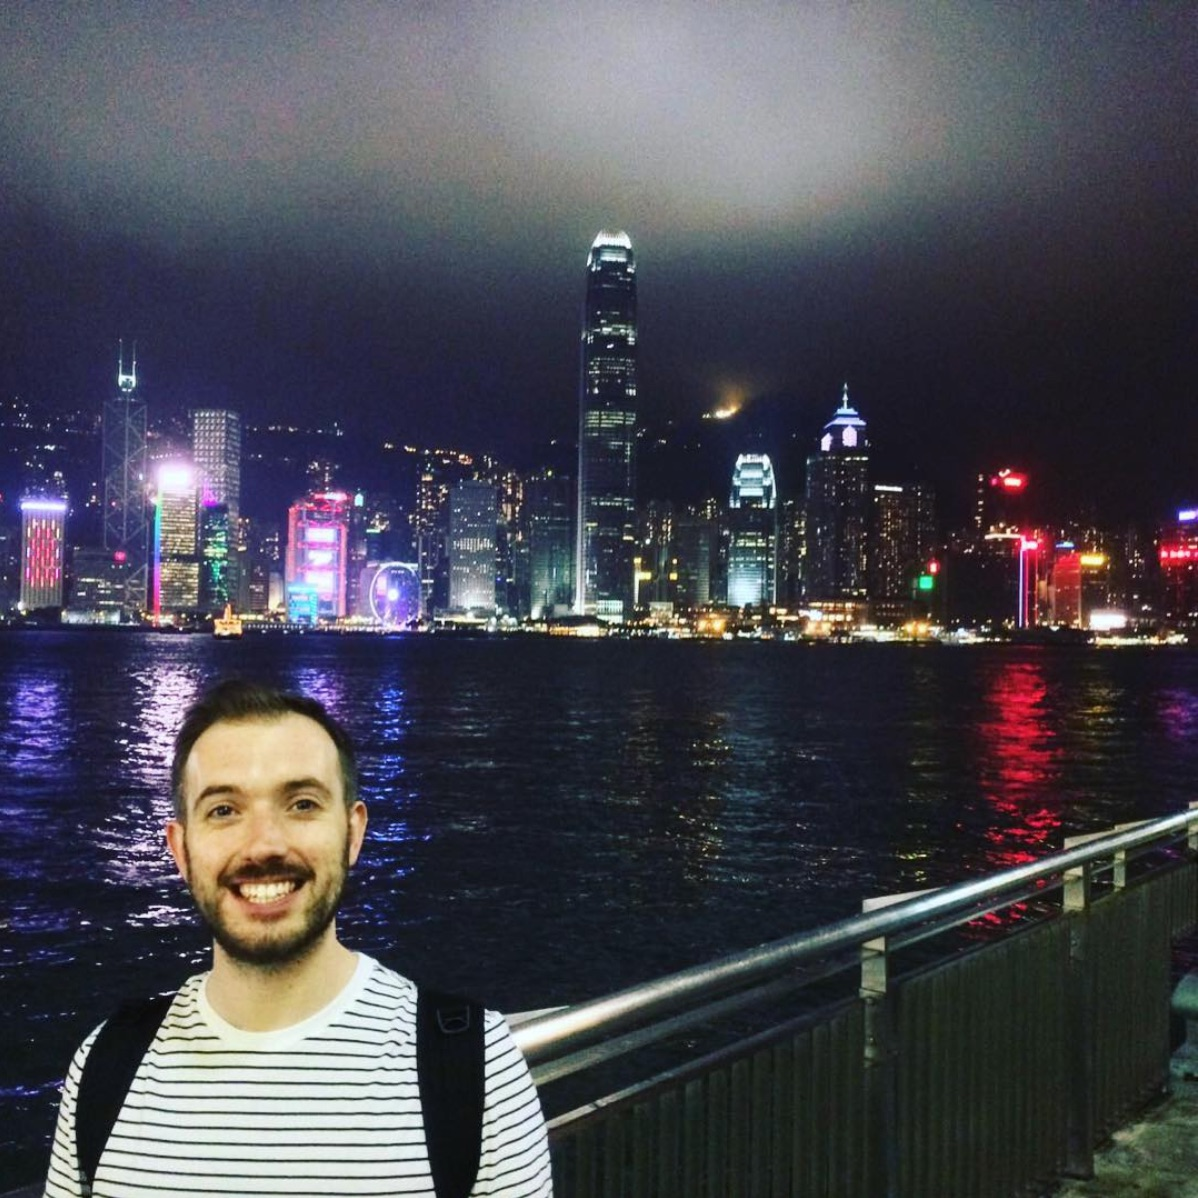 Hong Kong Vlog - Videos from 2o16 and 2018